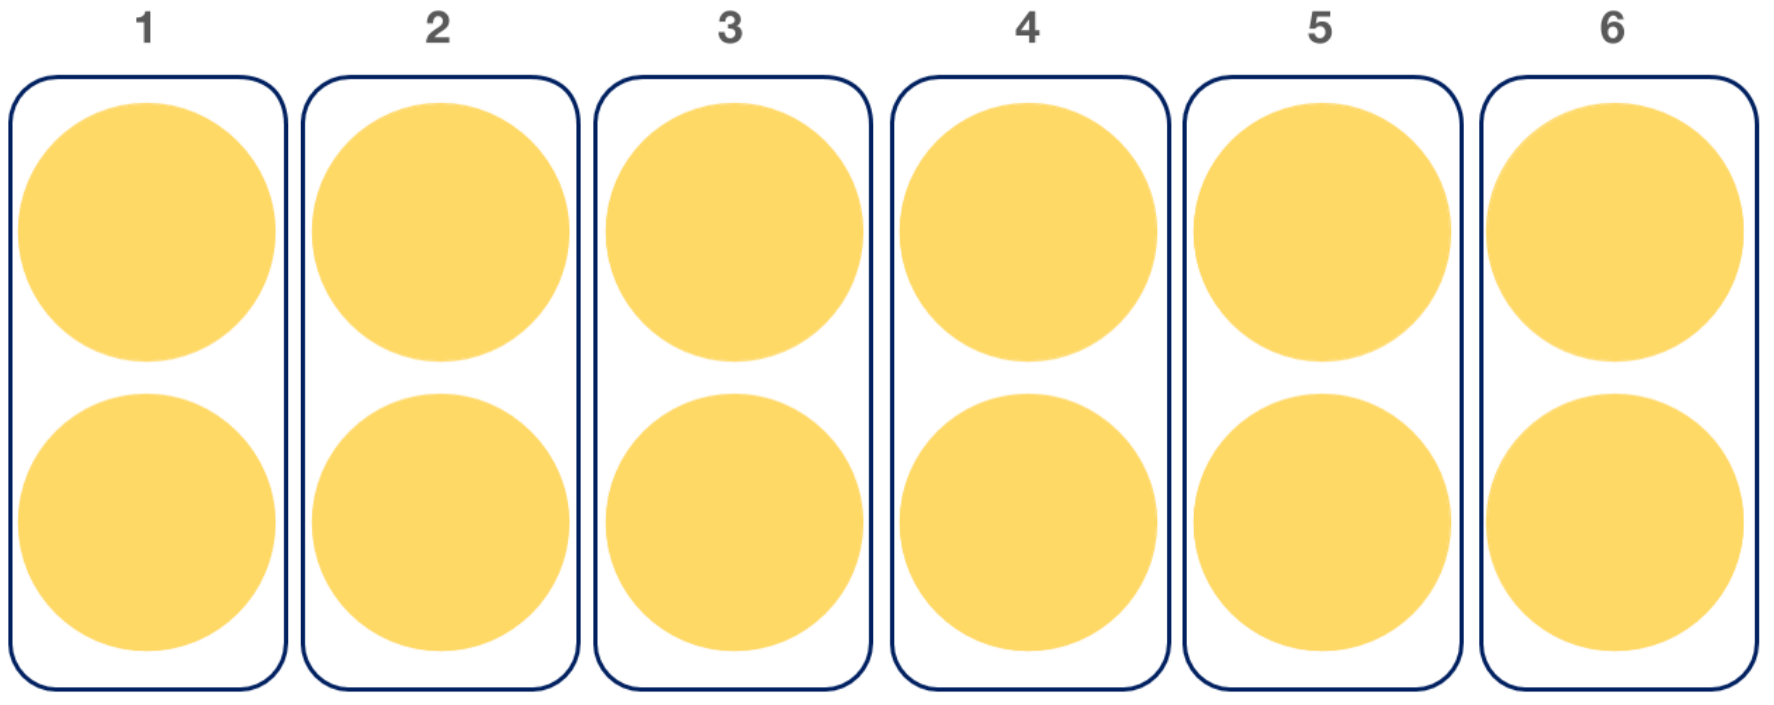 6 groups of 2 dots